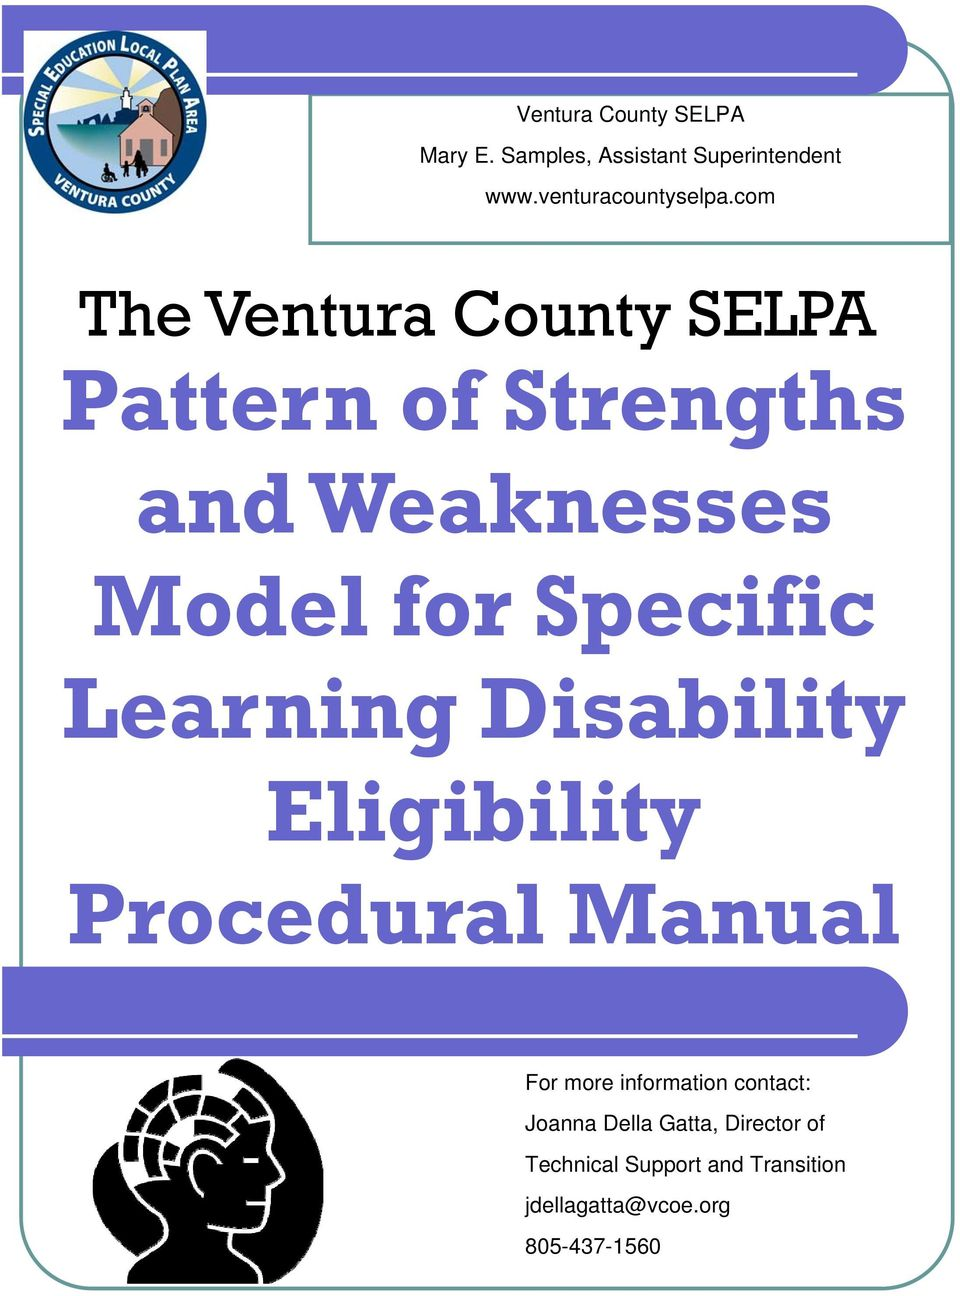 the ventura county selpa pattern of strengths and weaknesses model learning disability eligibility procedural manual for more information contact joanna